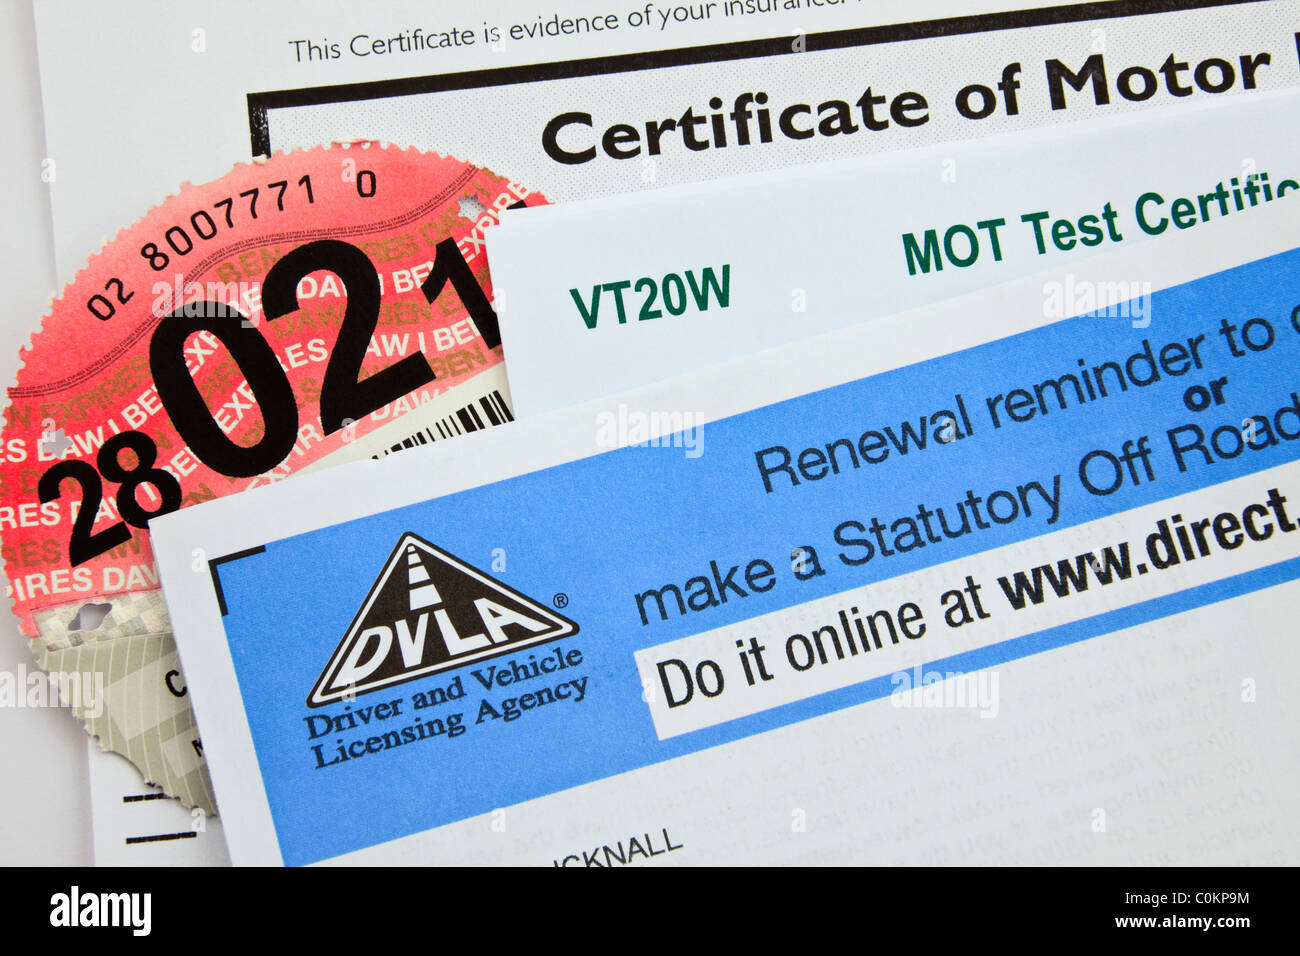 Vehicle tax disc stock photos vehicle tax disc stock images alamy dvla renewal reminder form for renewing road tax disc with motor insurance 1betcityfo Image collections